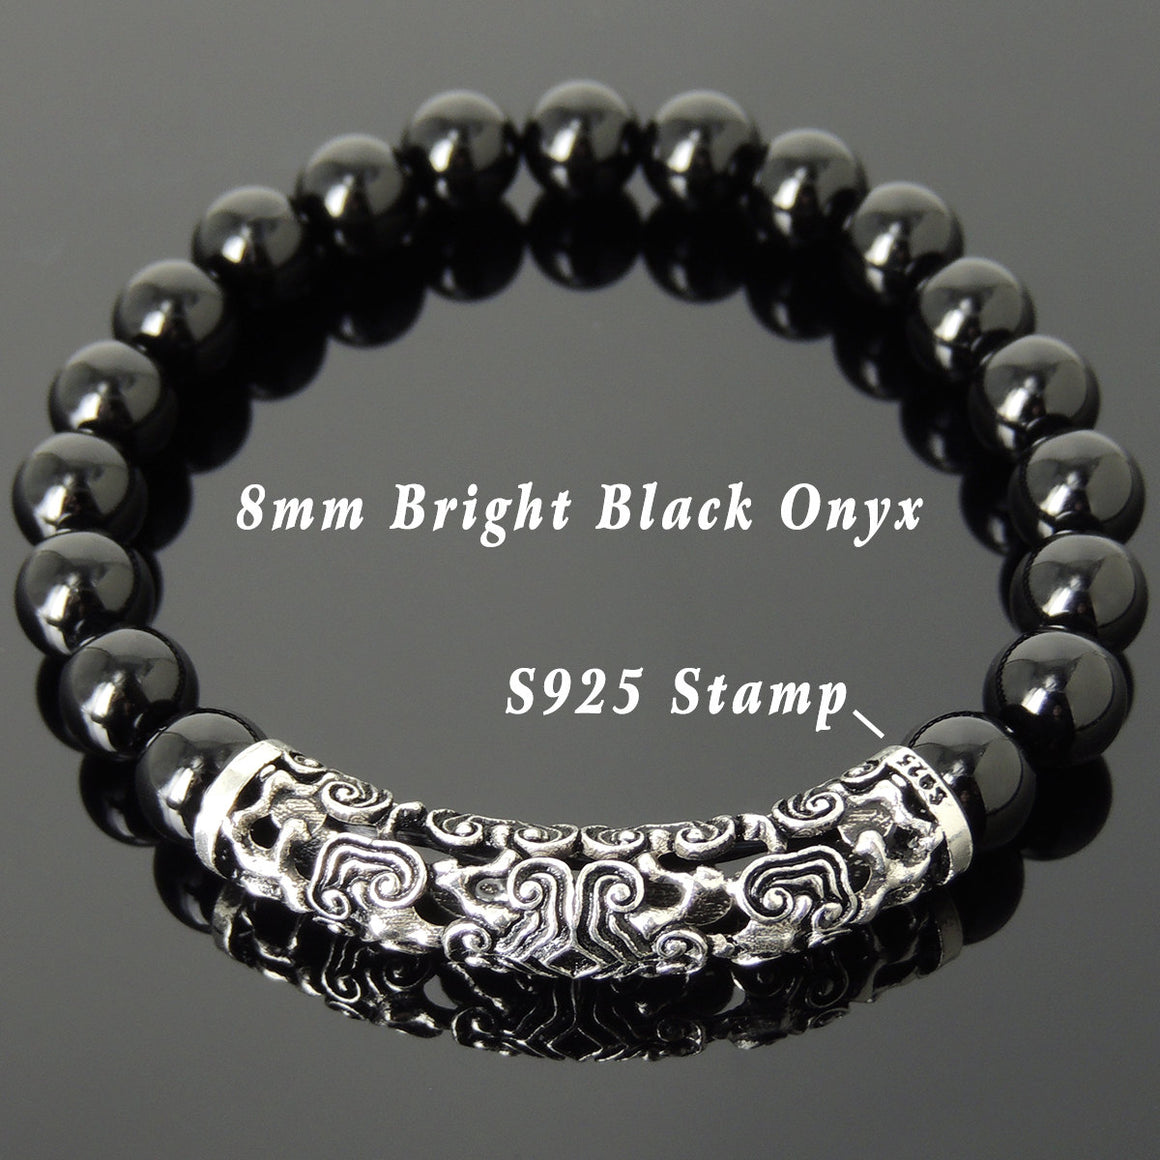 8mm Bright Black Onyx Healing Gemstone Bracelet with S925 Sterling Silver Lucky Chinese Wood Charm - Handmade by Gem & Silver BR964